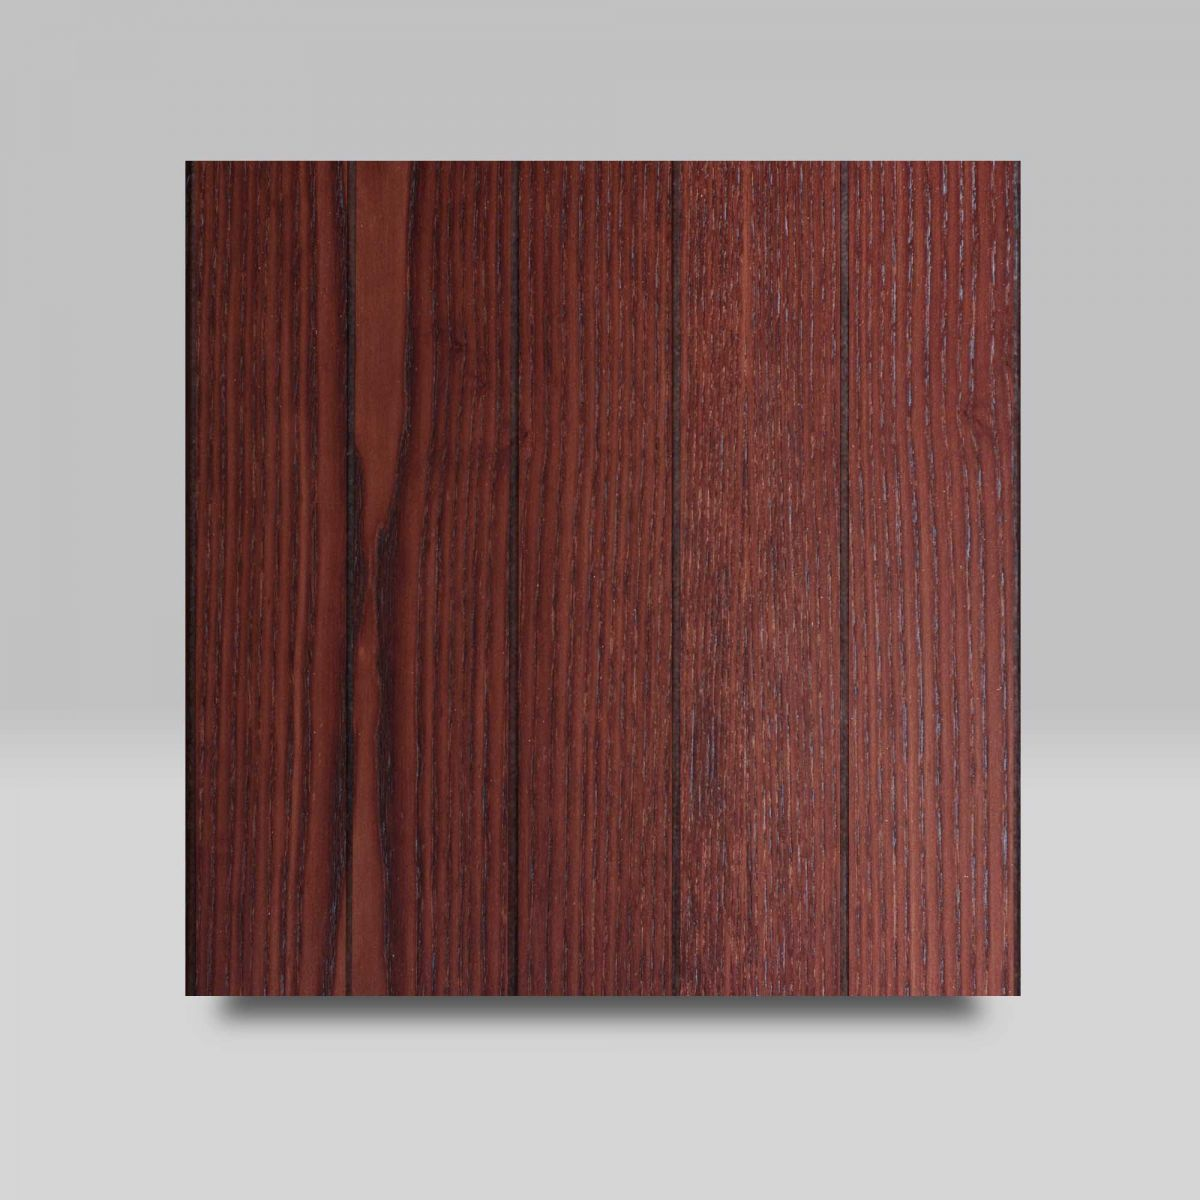 Chestnut with Vertical Grooves finish